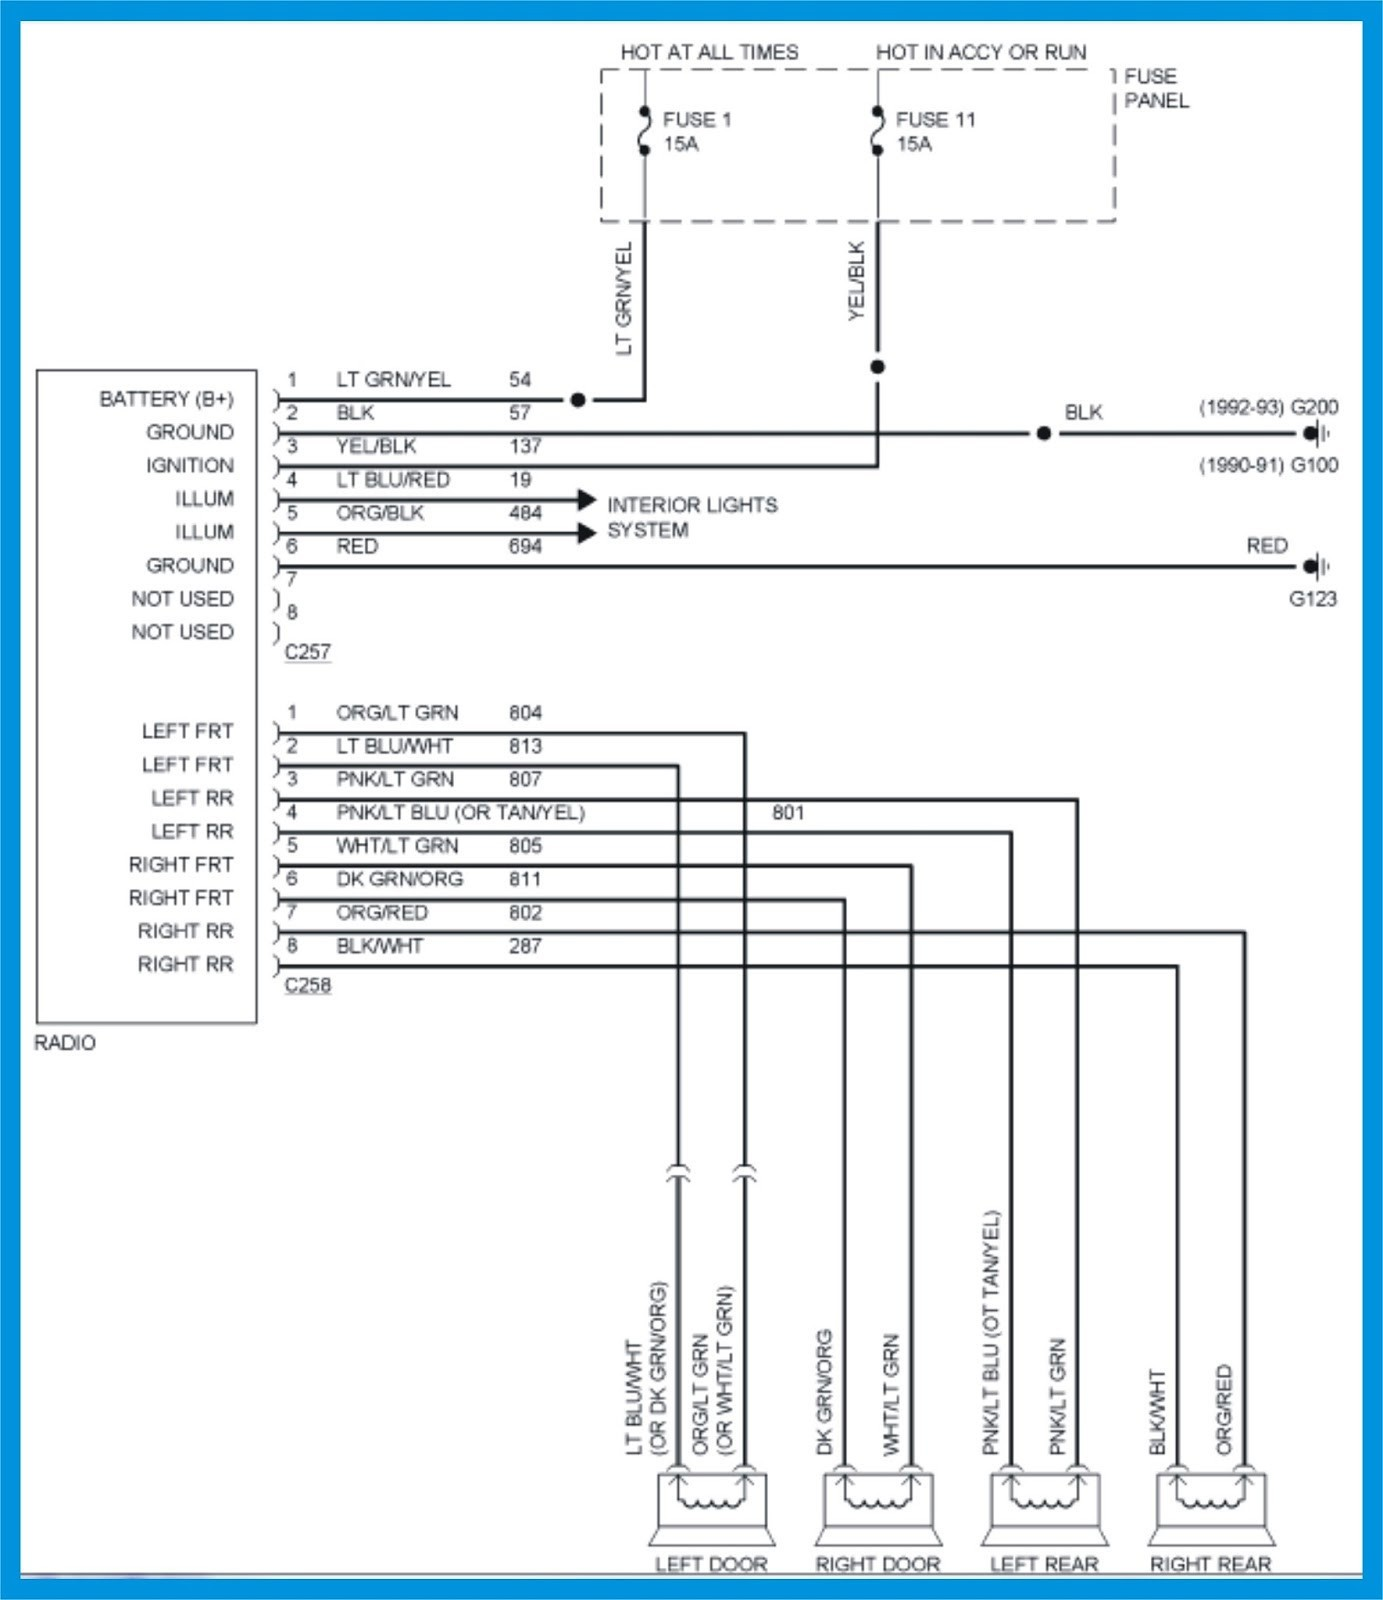 15 Ford F150 Radio Wiring Diagram 2001 E350 In 2004 F250 With Outstanding Explorer